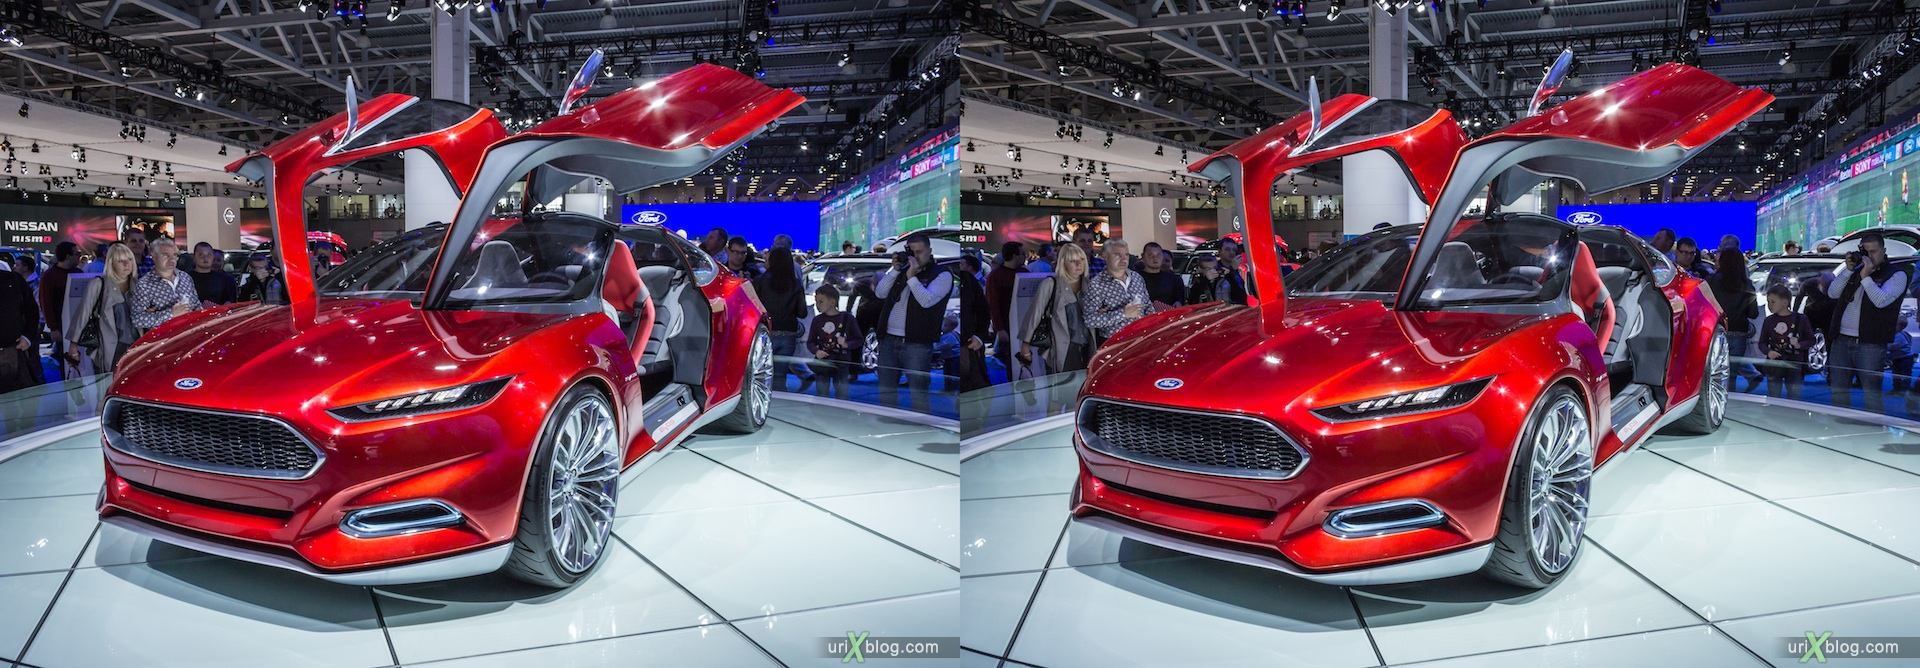 2012, Ford Evos, Moscow International Automobile Salon, auto show, 3D, stereo pair, cross-eyed, crossview